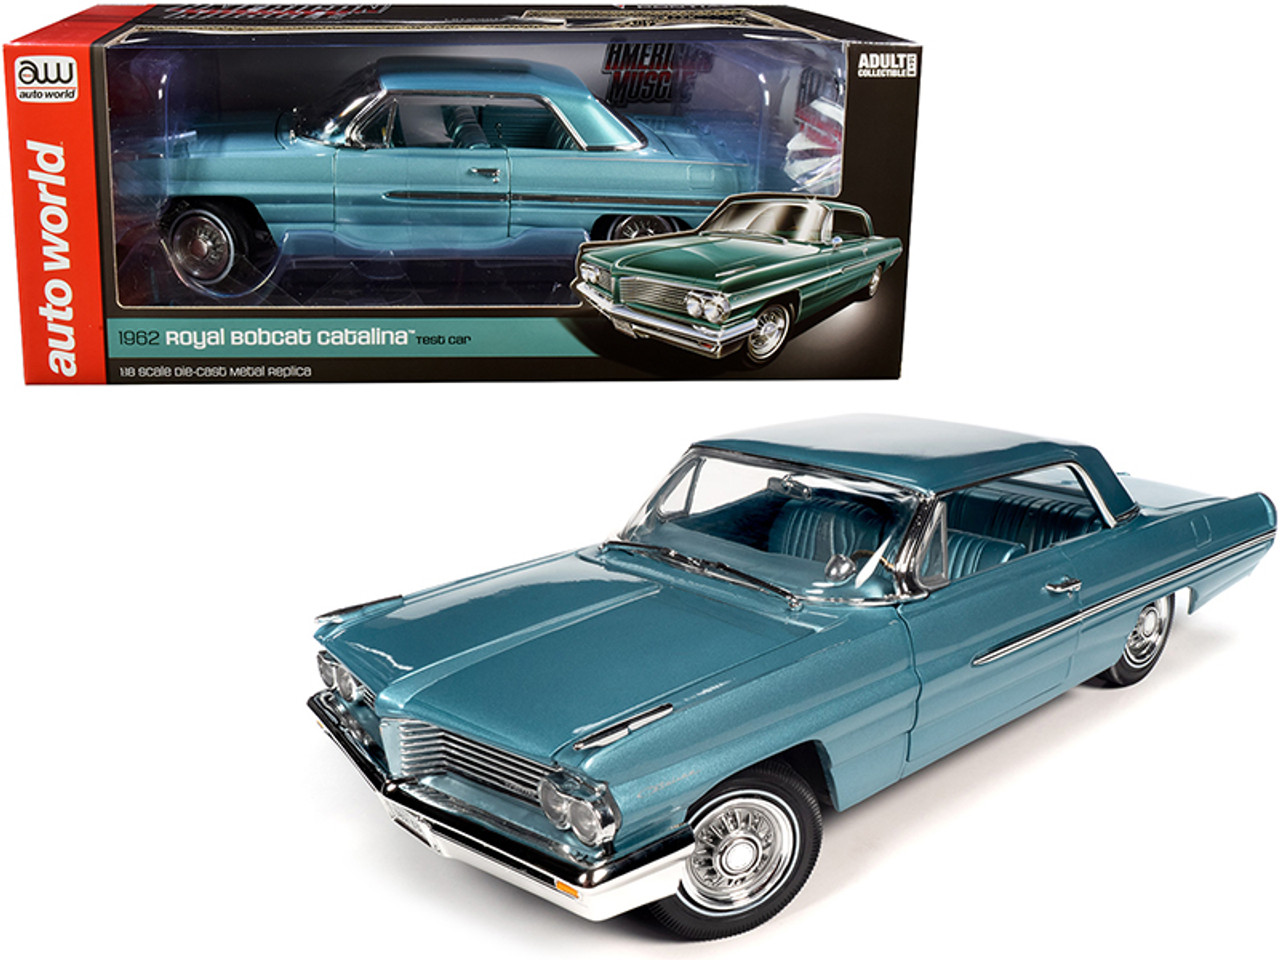 1962 Pontiac Royal Bobcat Catalina Hardtop Test Car Aquamarine 1 18 Diecast Model Car By Autoworld Livecarmodel Com